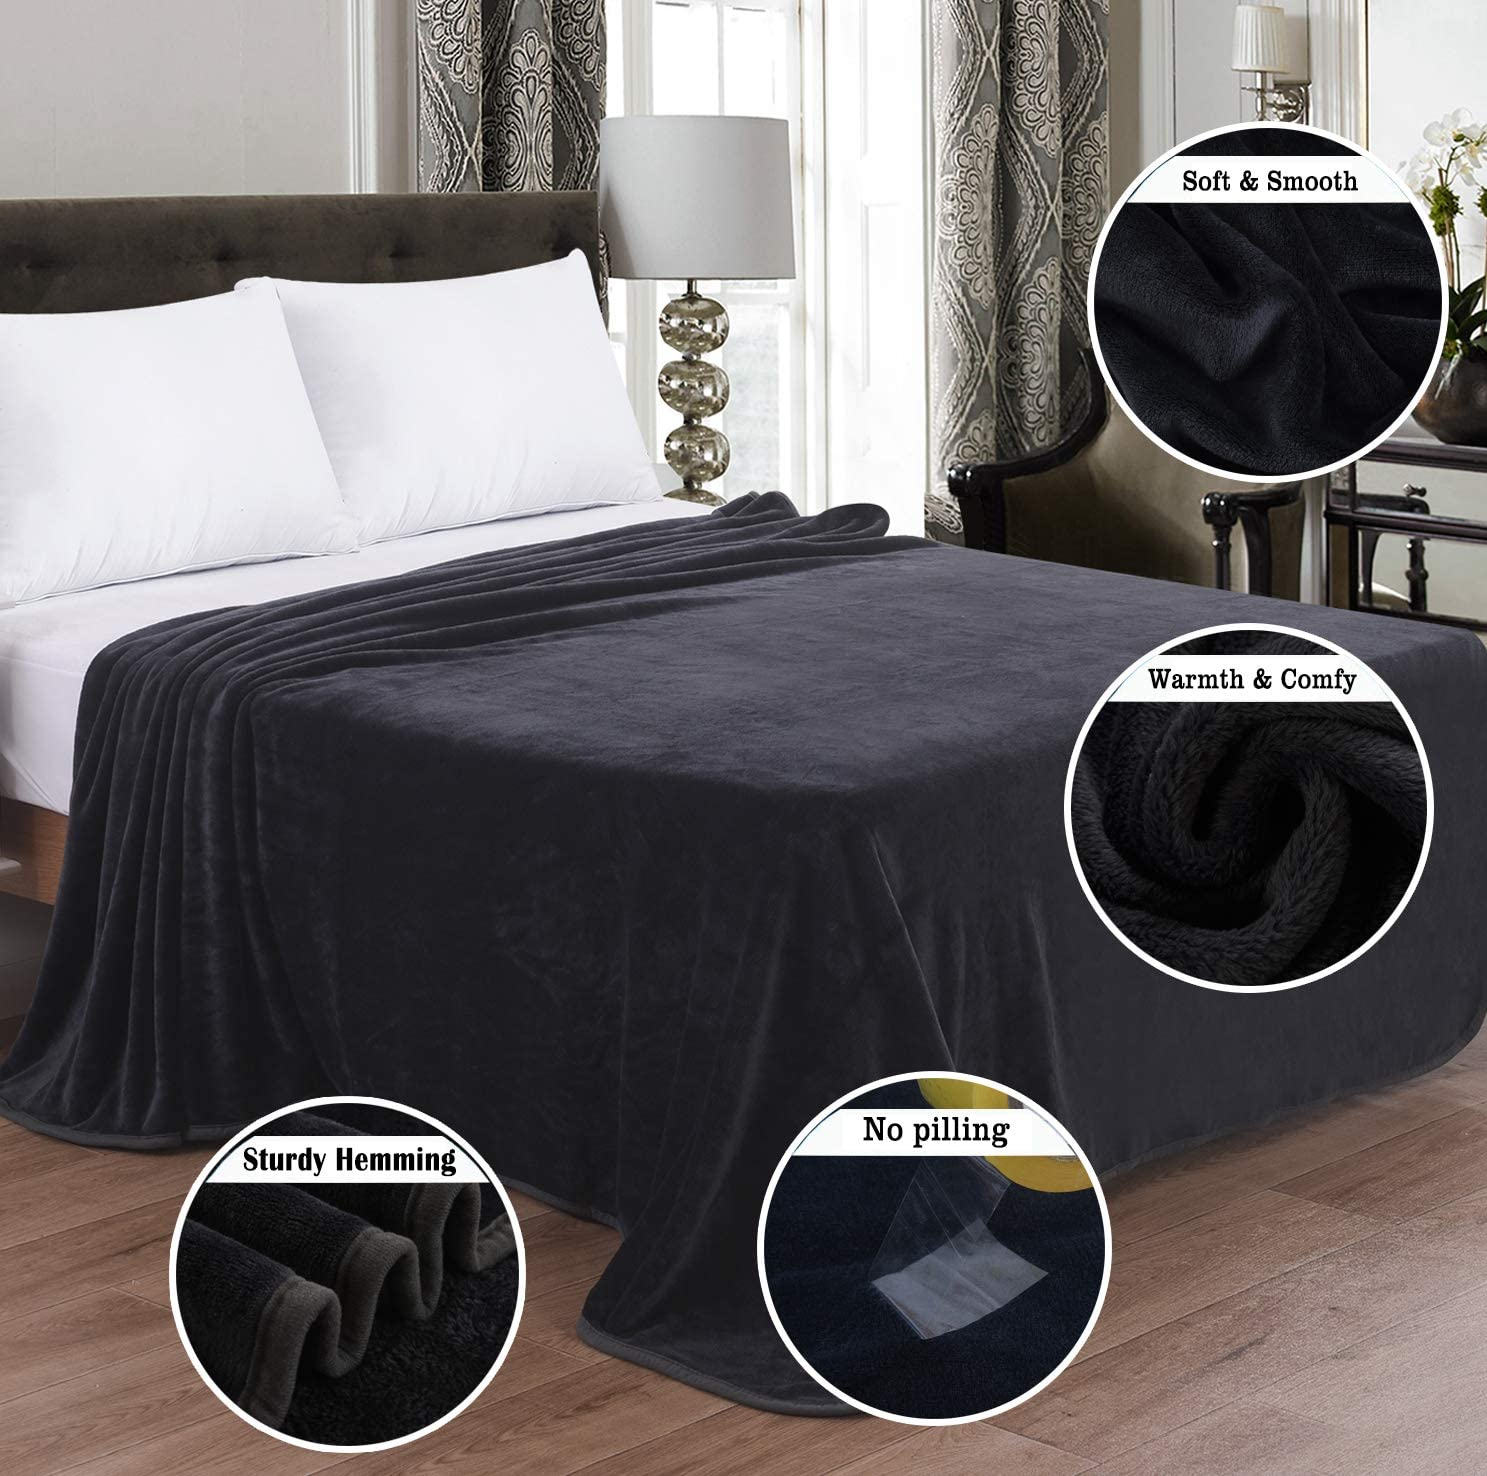 """OBOEY Polar Fleece Blankets Queen Size for Spring Summer All Season 350GSM Lightweight Microfiber Anti-Static for Bed, Couch, Home, Sofa, Car, Airplane, and Outdoors 90"""" x 90""""(Dark Gray Queen): Home & Kitchen"""